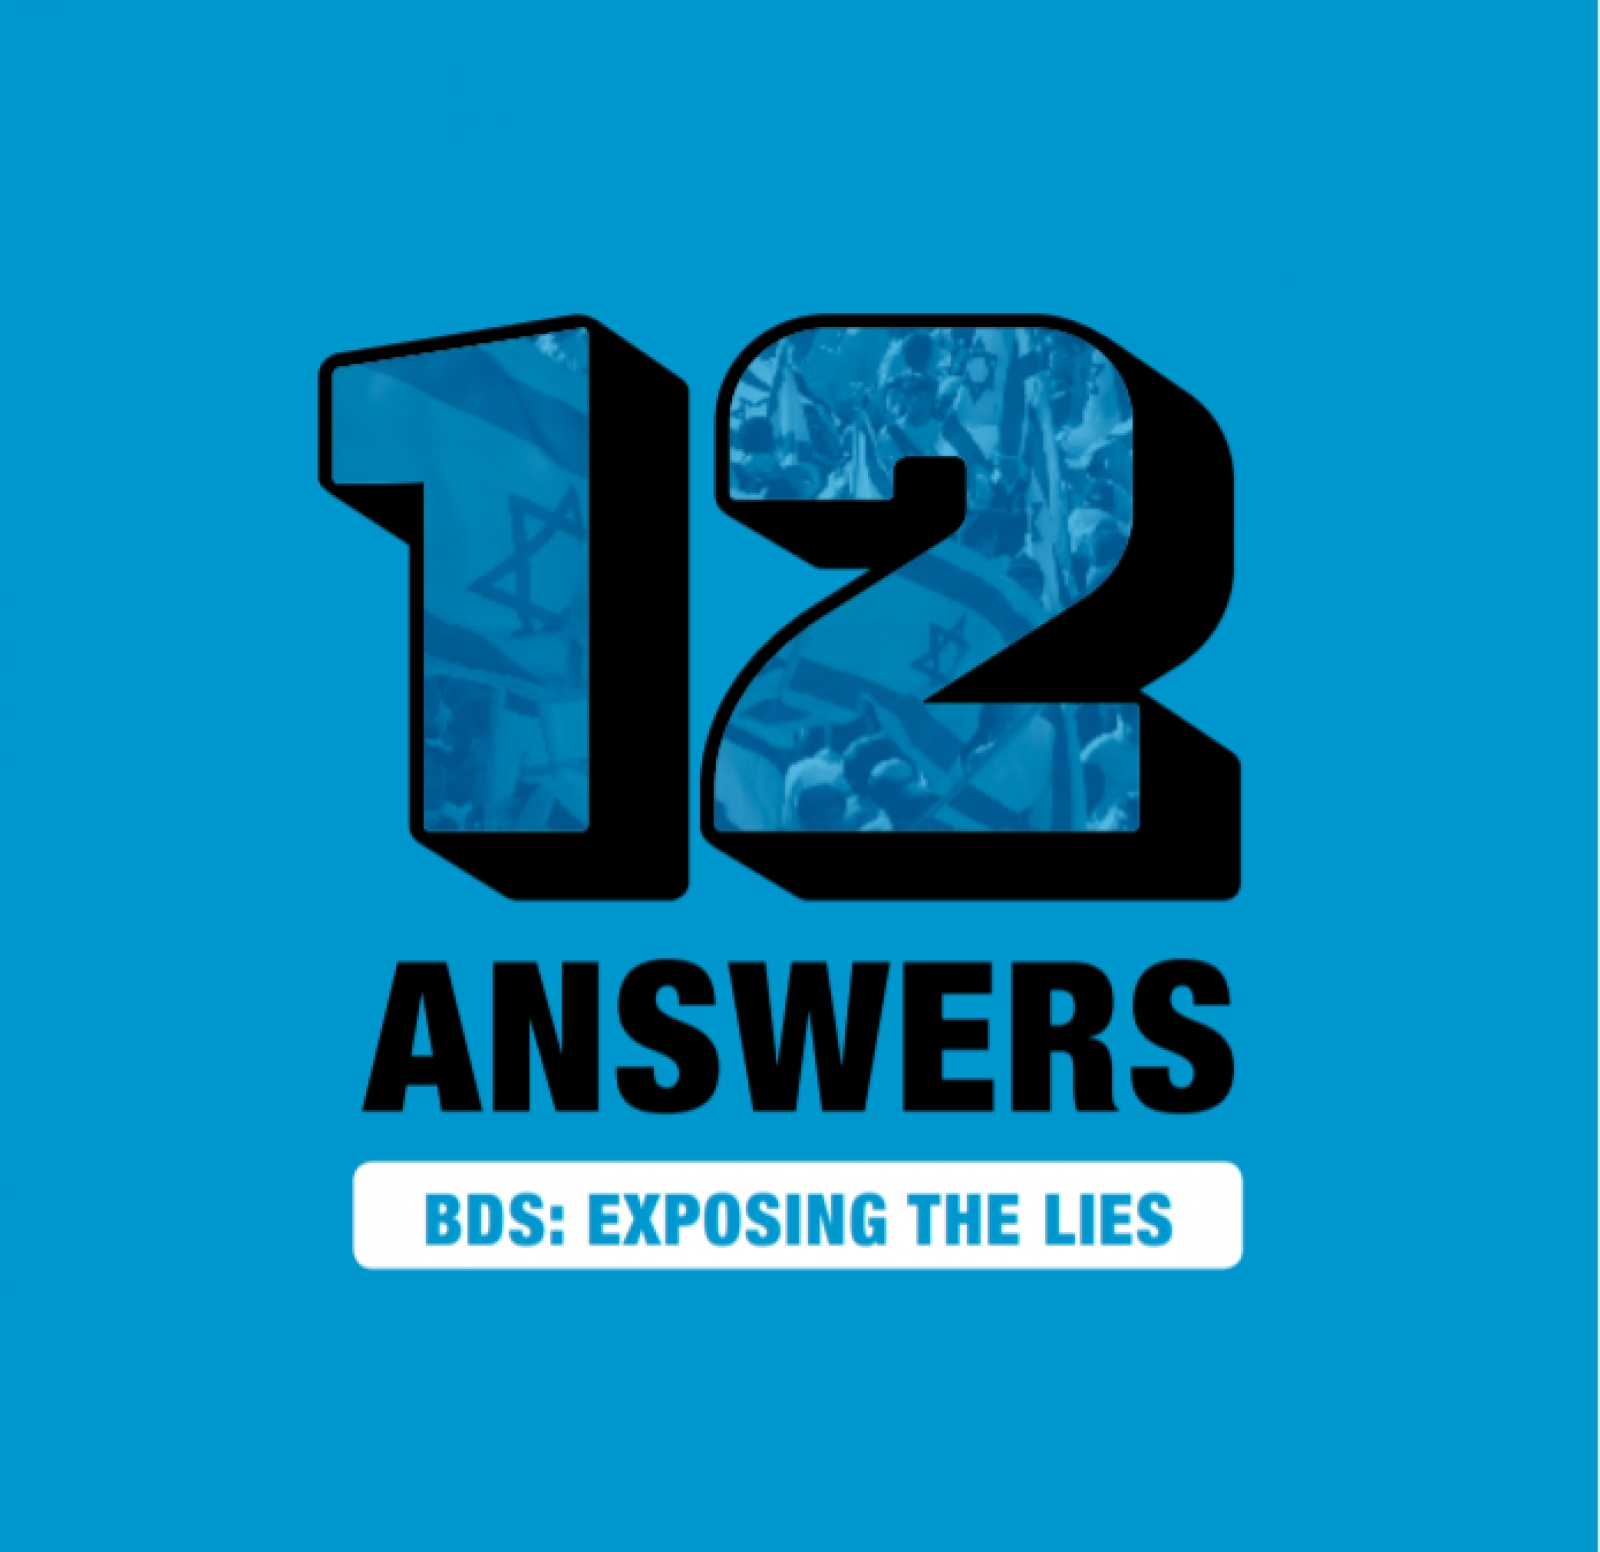 BDS: exposing the lies